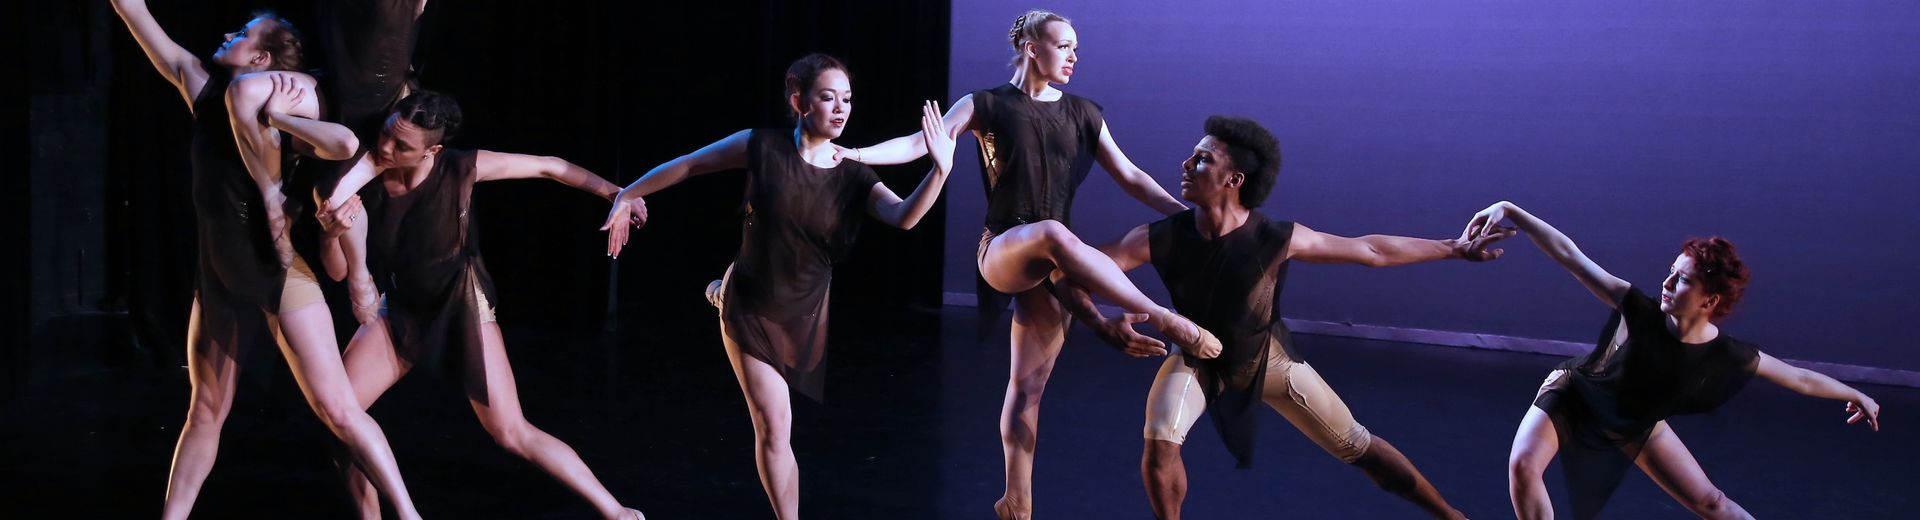 Dancers perform on stage.